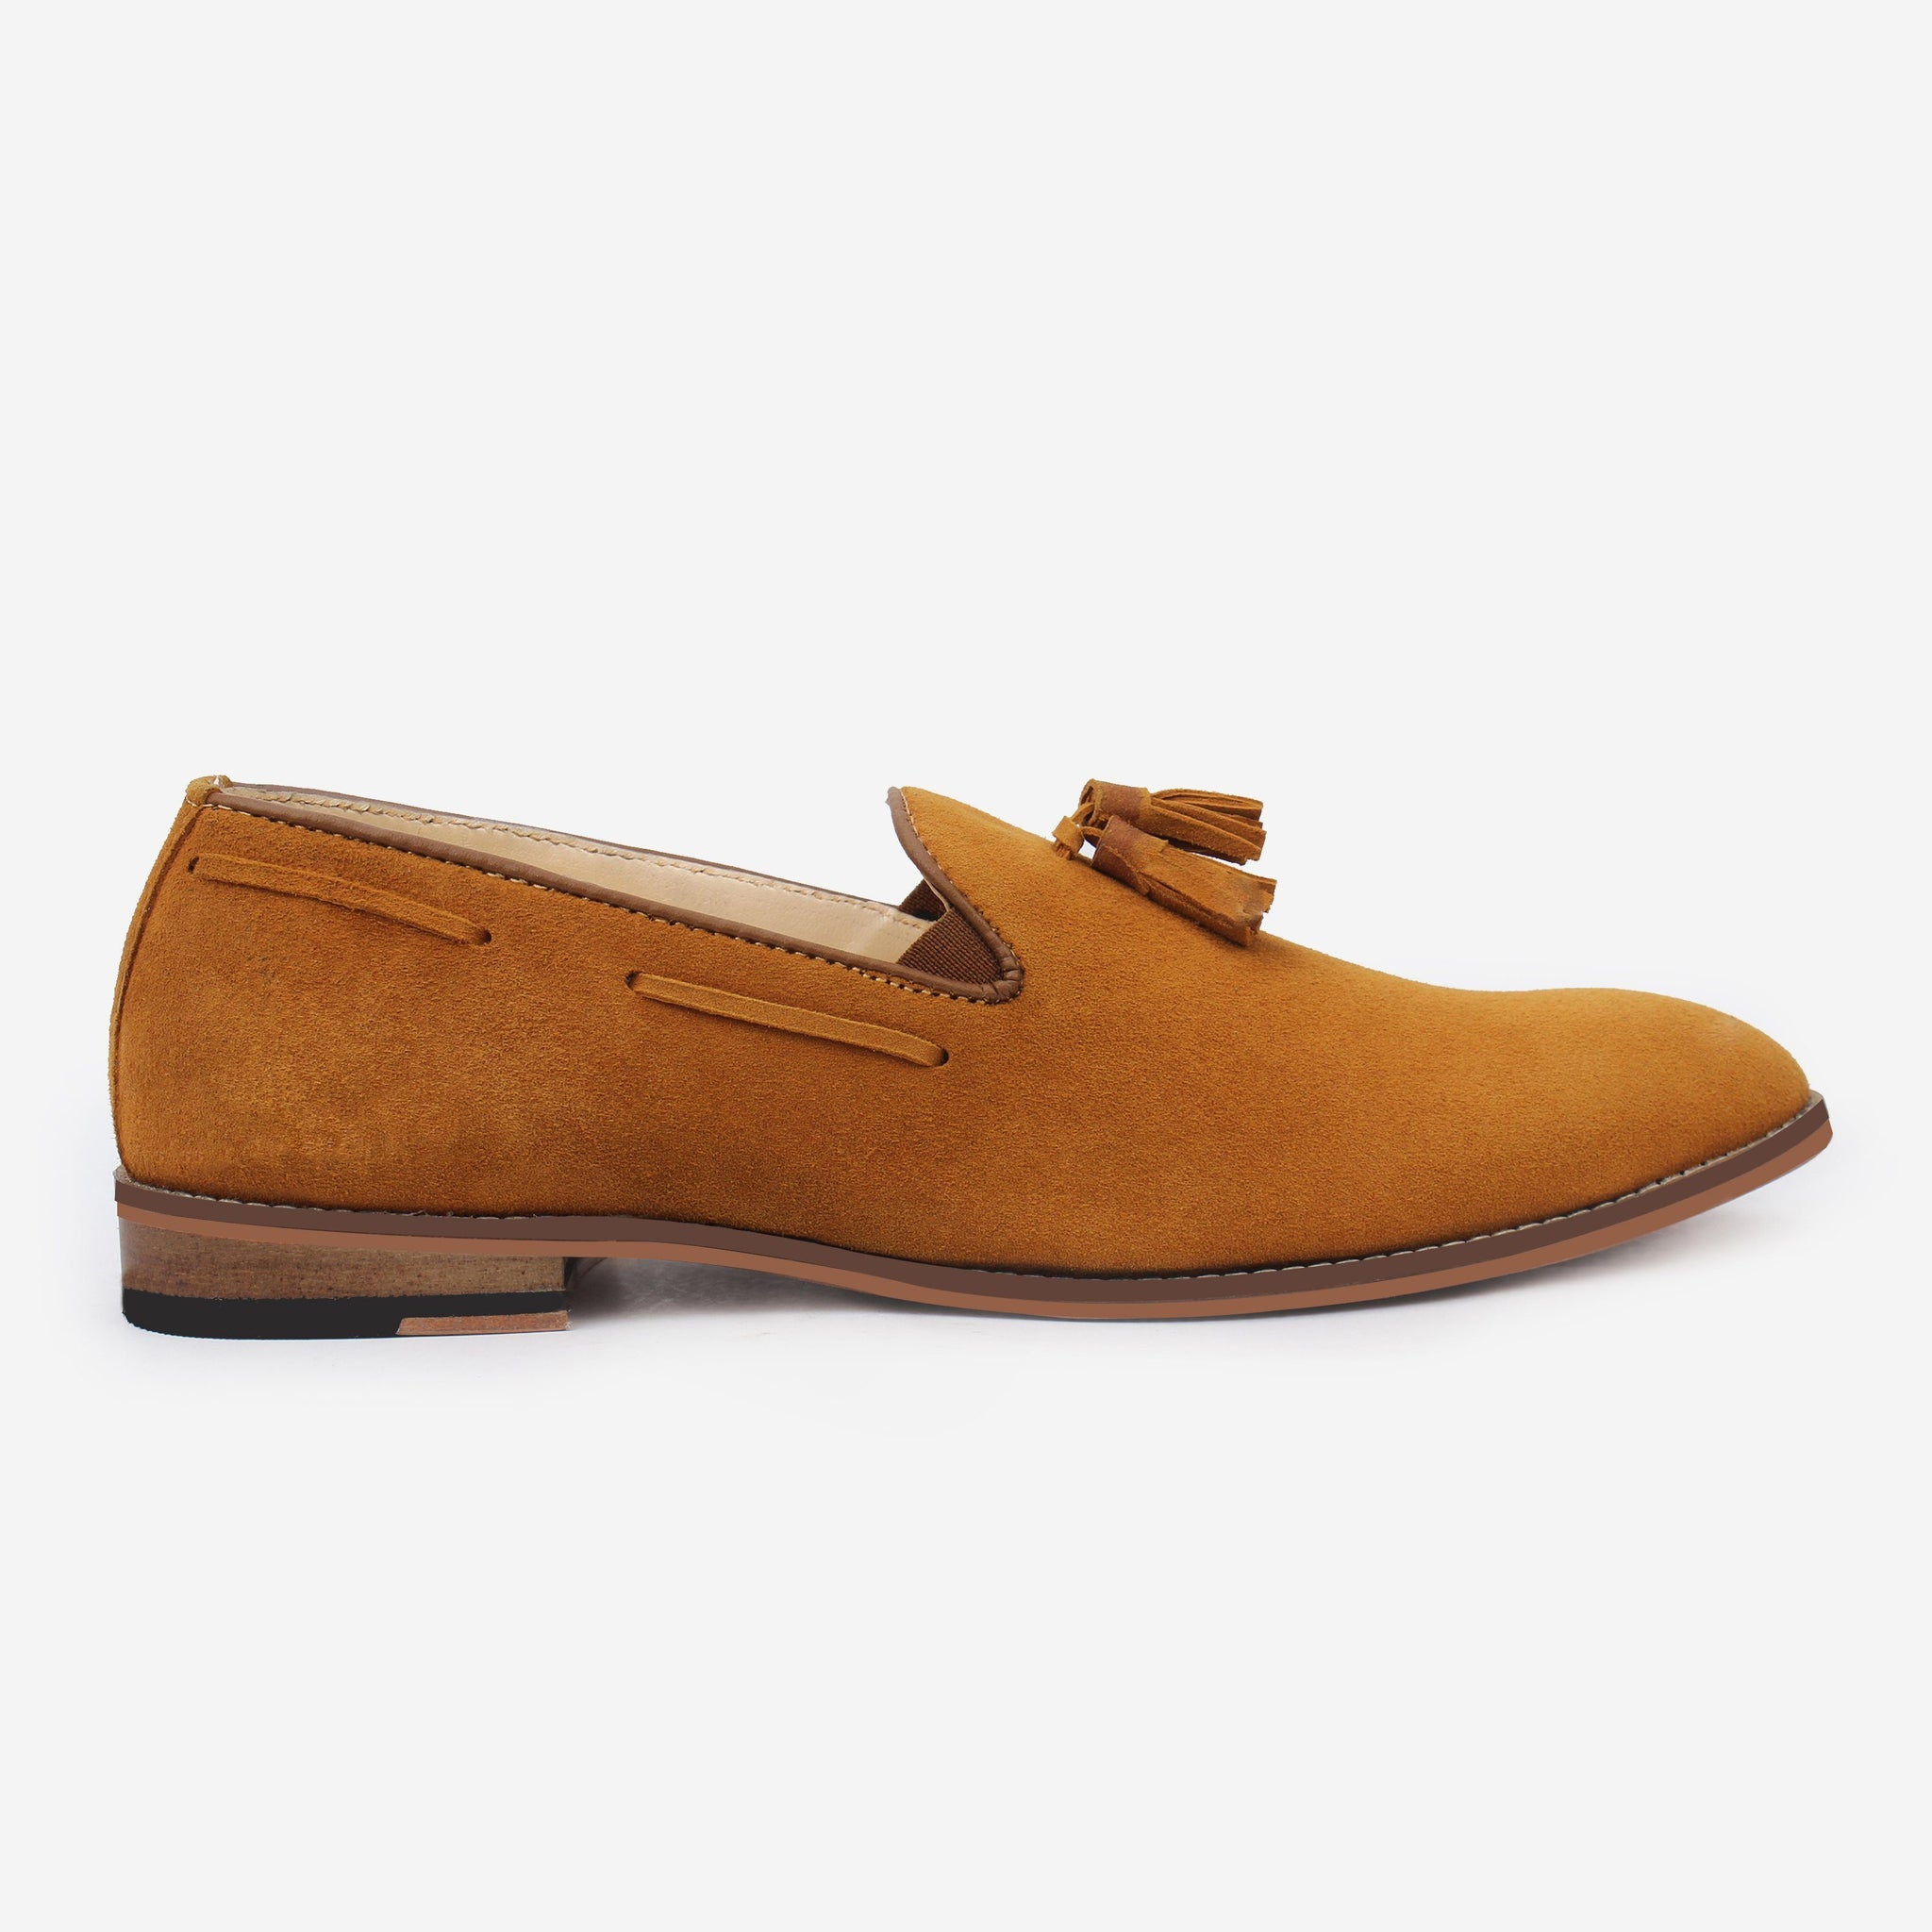 Jericho Loafer Tan Thebootsco